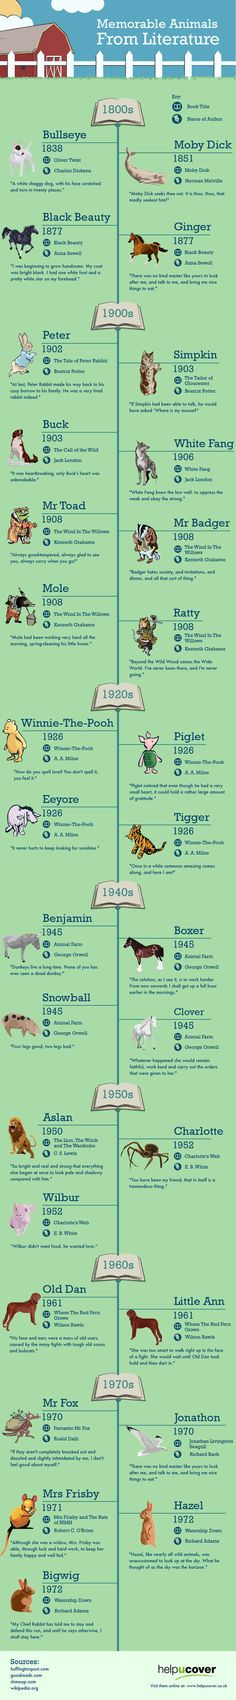 Memorable Animals From Literature - Writers Write